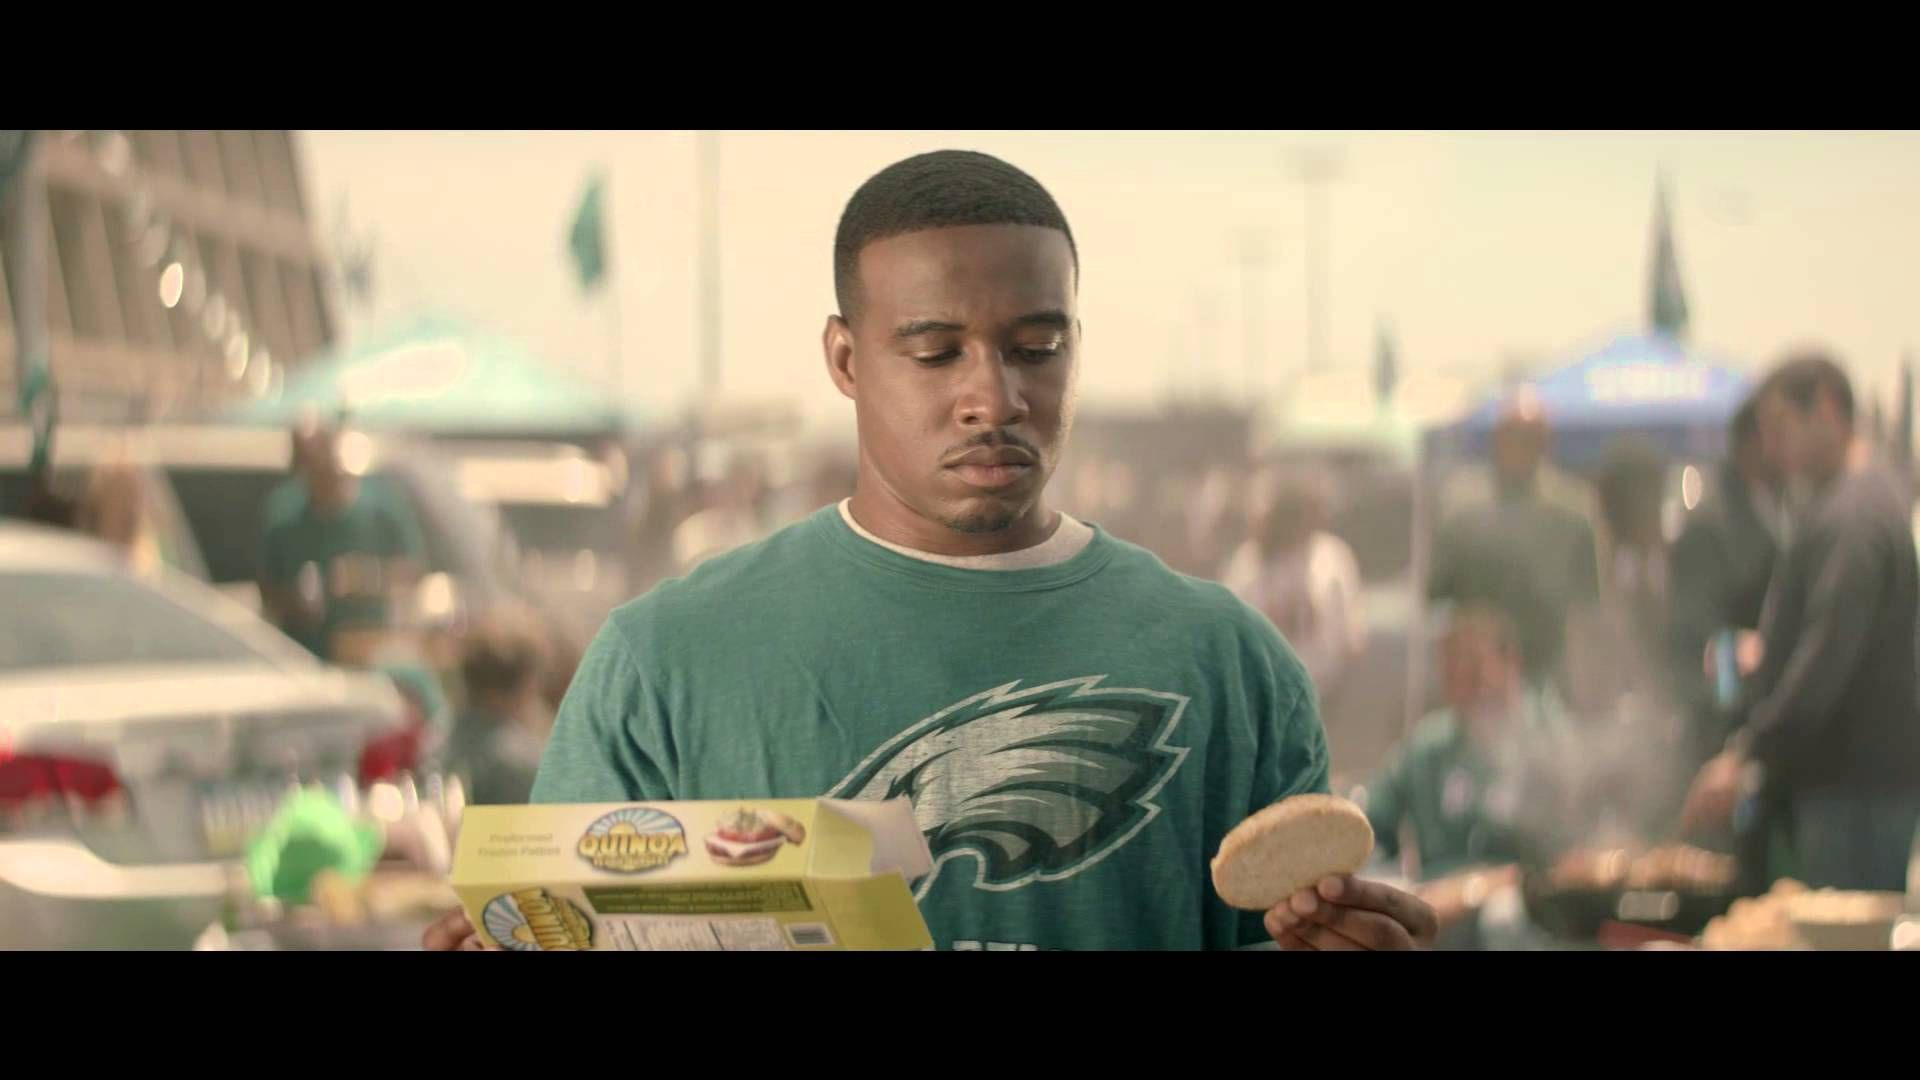 Bud light nfl quinoa another awesome commercial its a qween oh bud light nfl quinoa another awesome commercial its a qween oh aloadofball Images